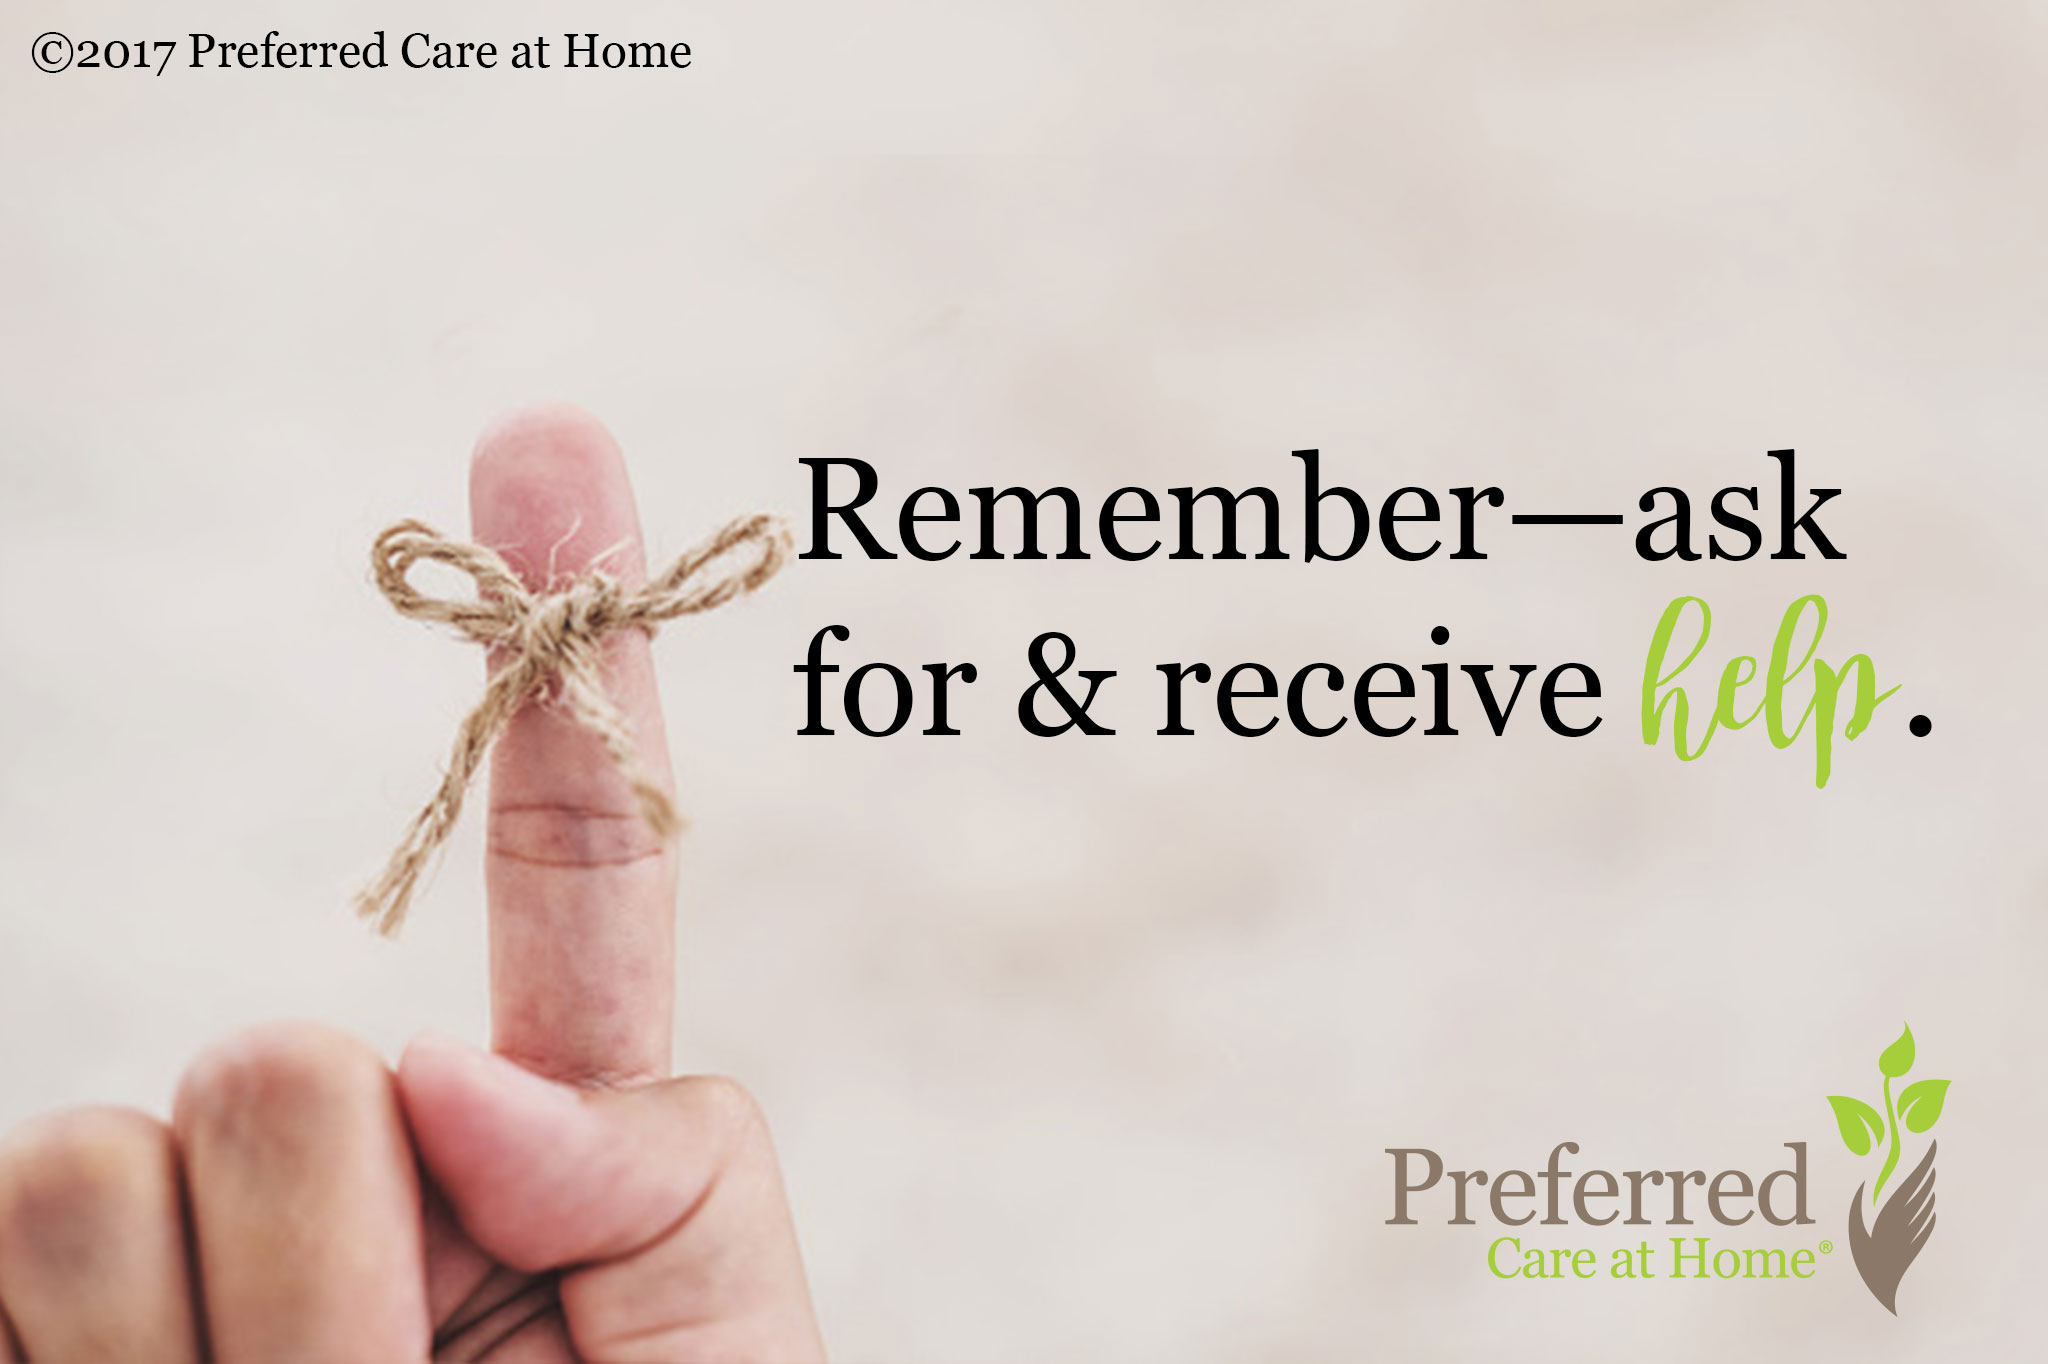 Beneficial Reminders for Caregivers Caring for those with Dementia